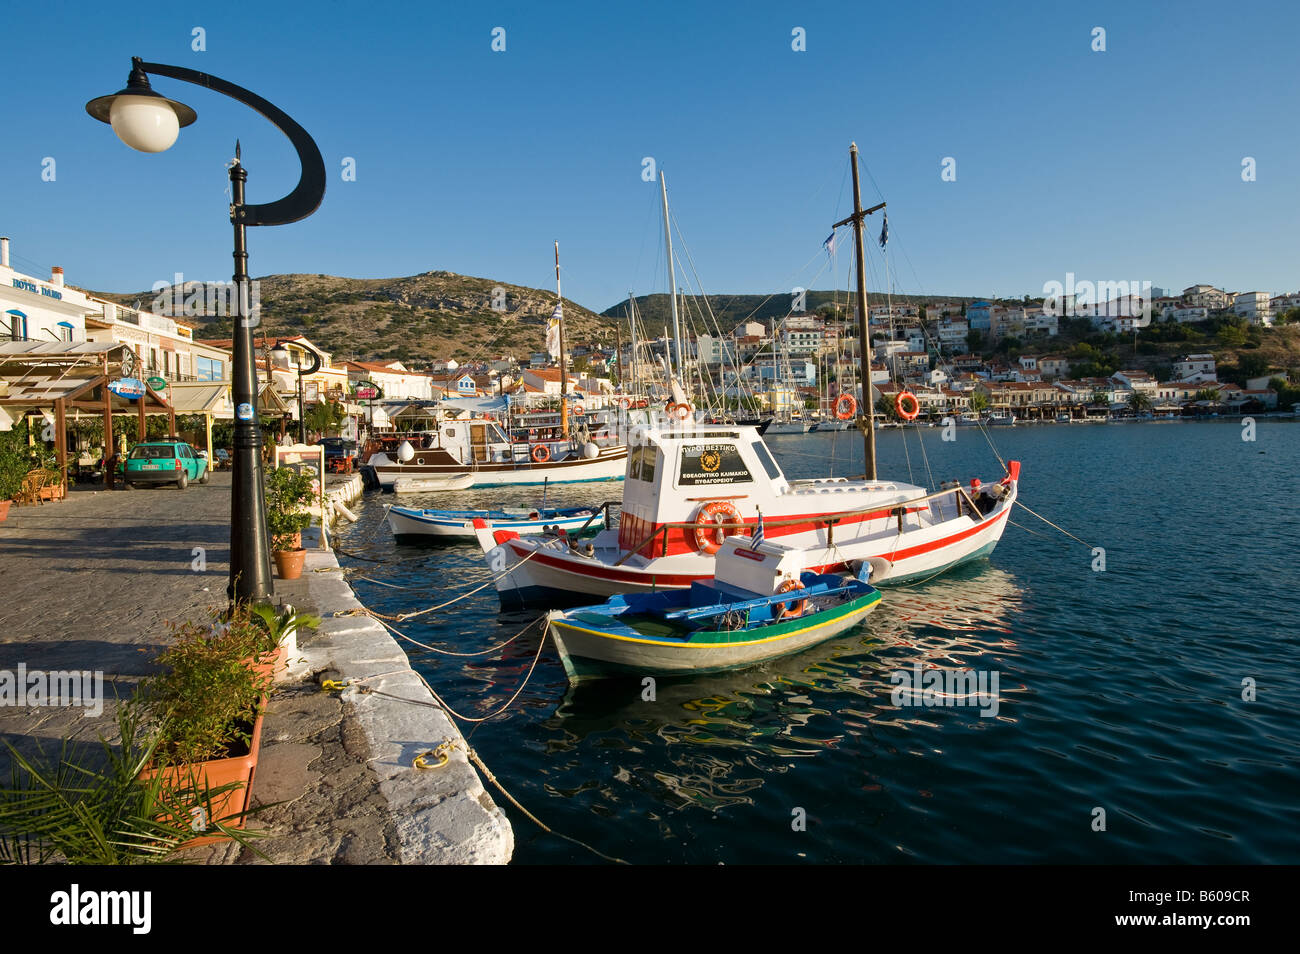 Small fisherman boats in a sunny and picturesque harbour. Stock Photo